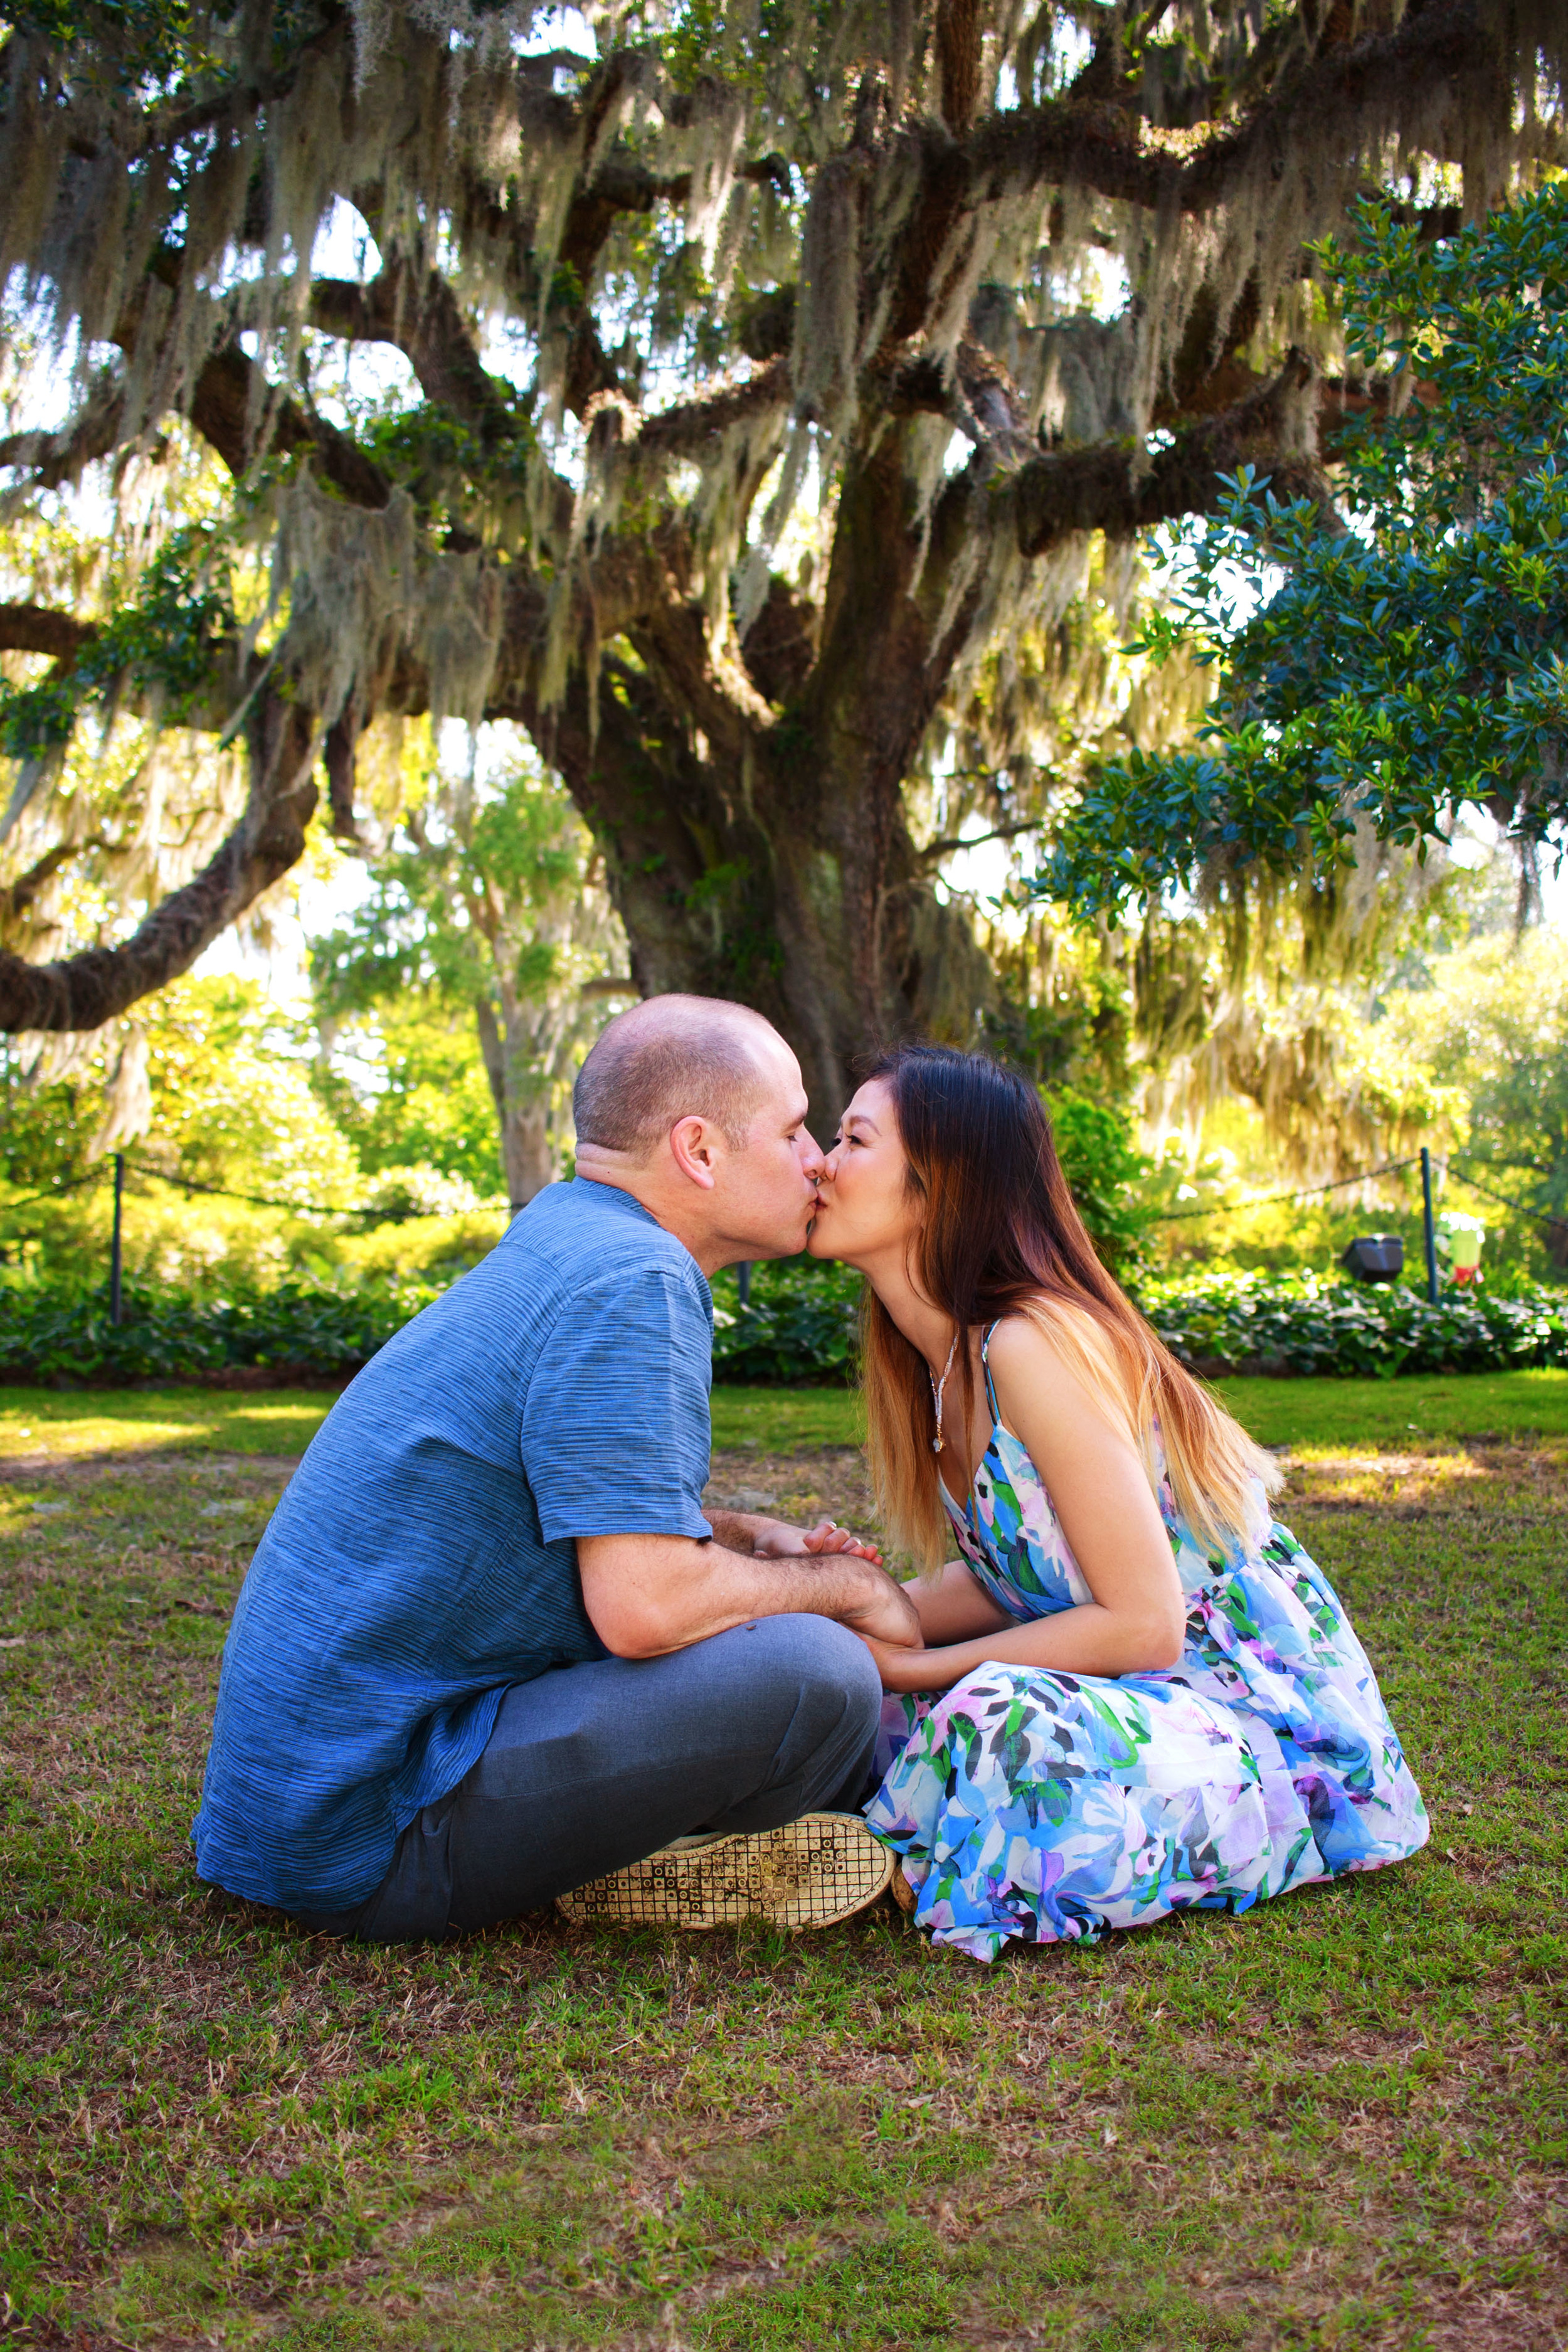 Airlie_Gardens_Engagement_Photography_Brian_&_Amy_55.jpg